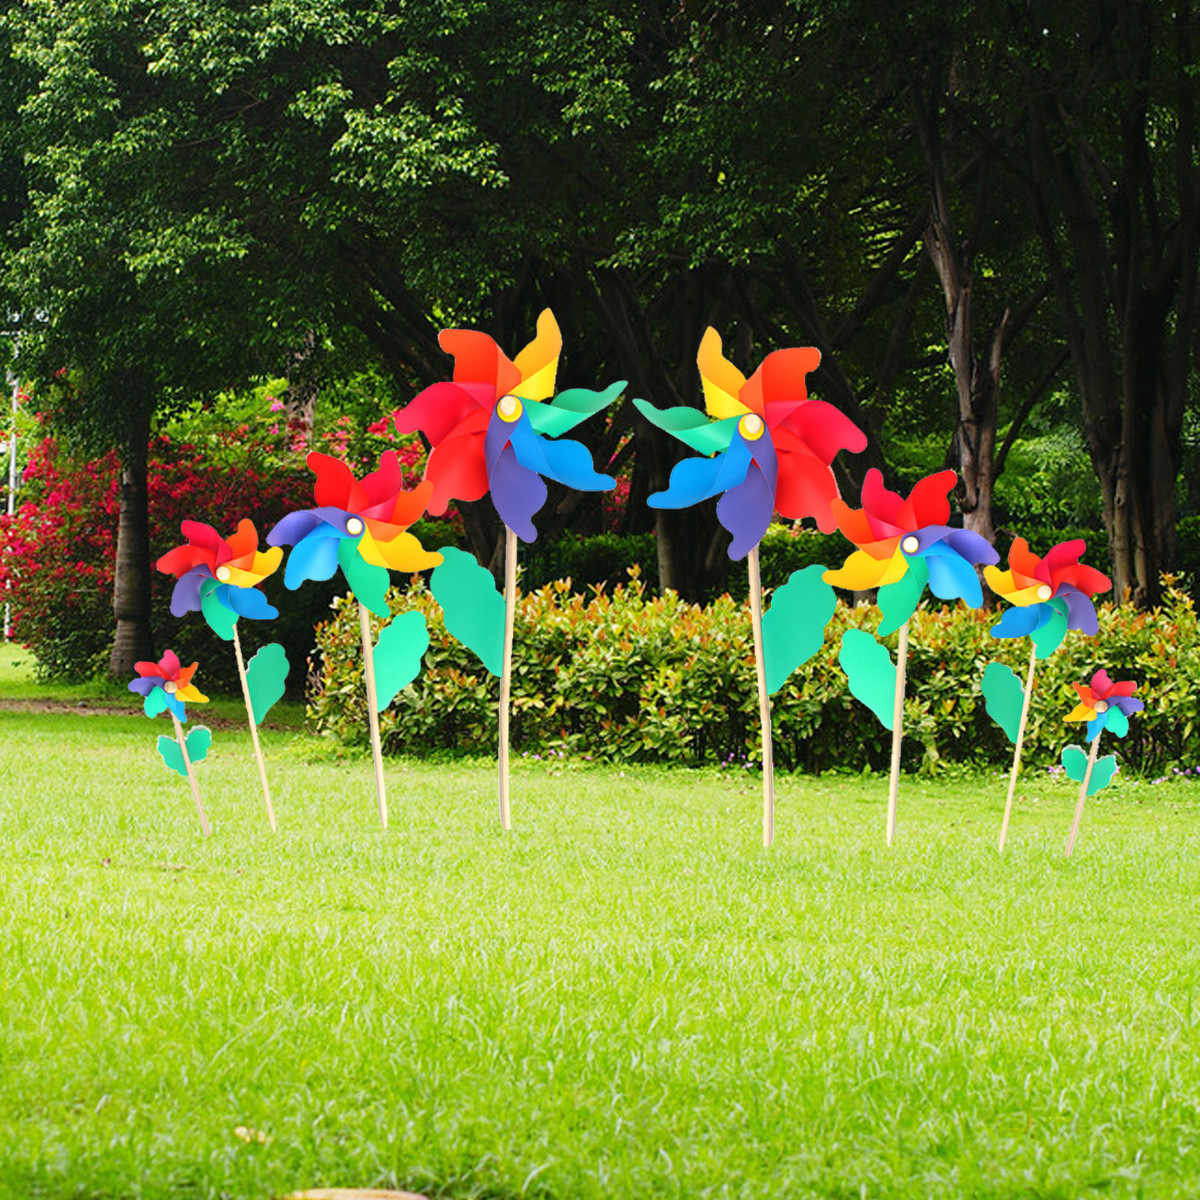 12CM Plastic Windmill Toy Colorful Windmill Children's toys Home Garden Yard Decor Outdoor Toy for Kids Pinwheel Kit